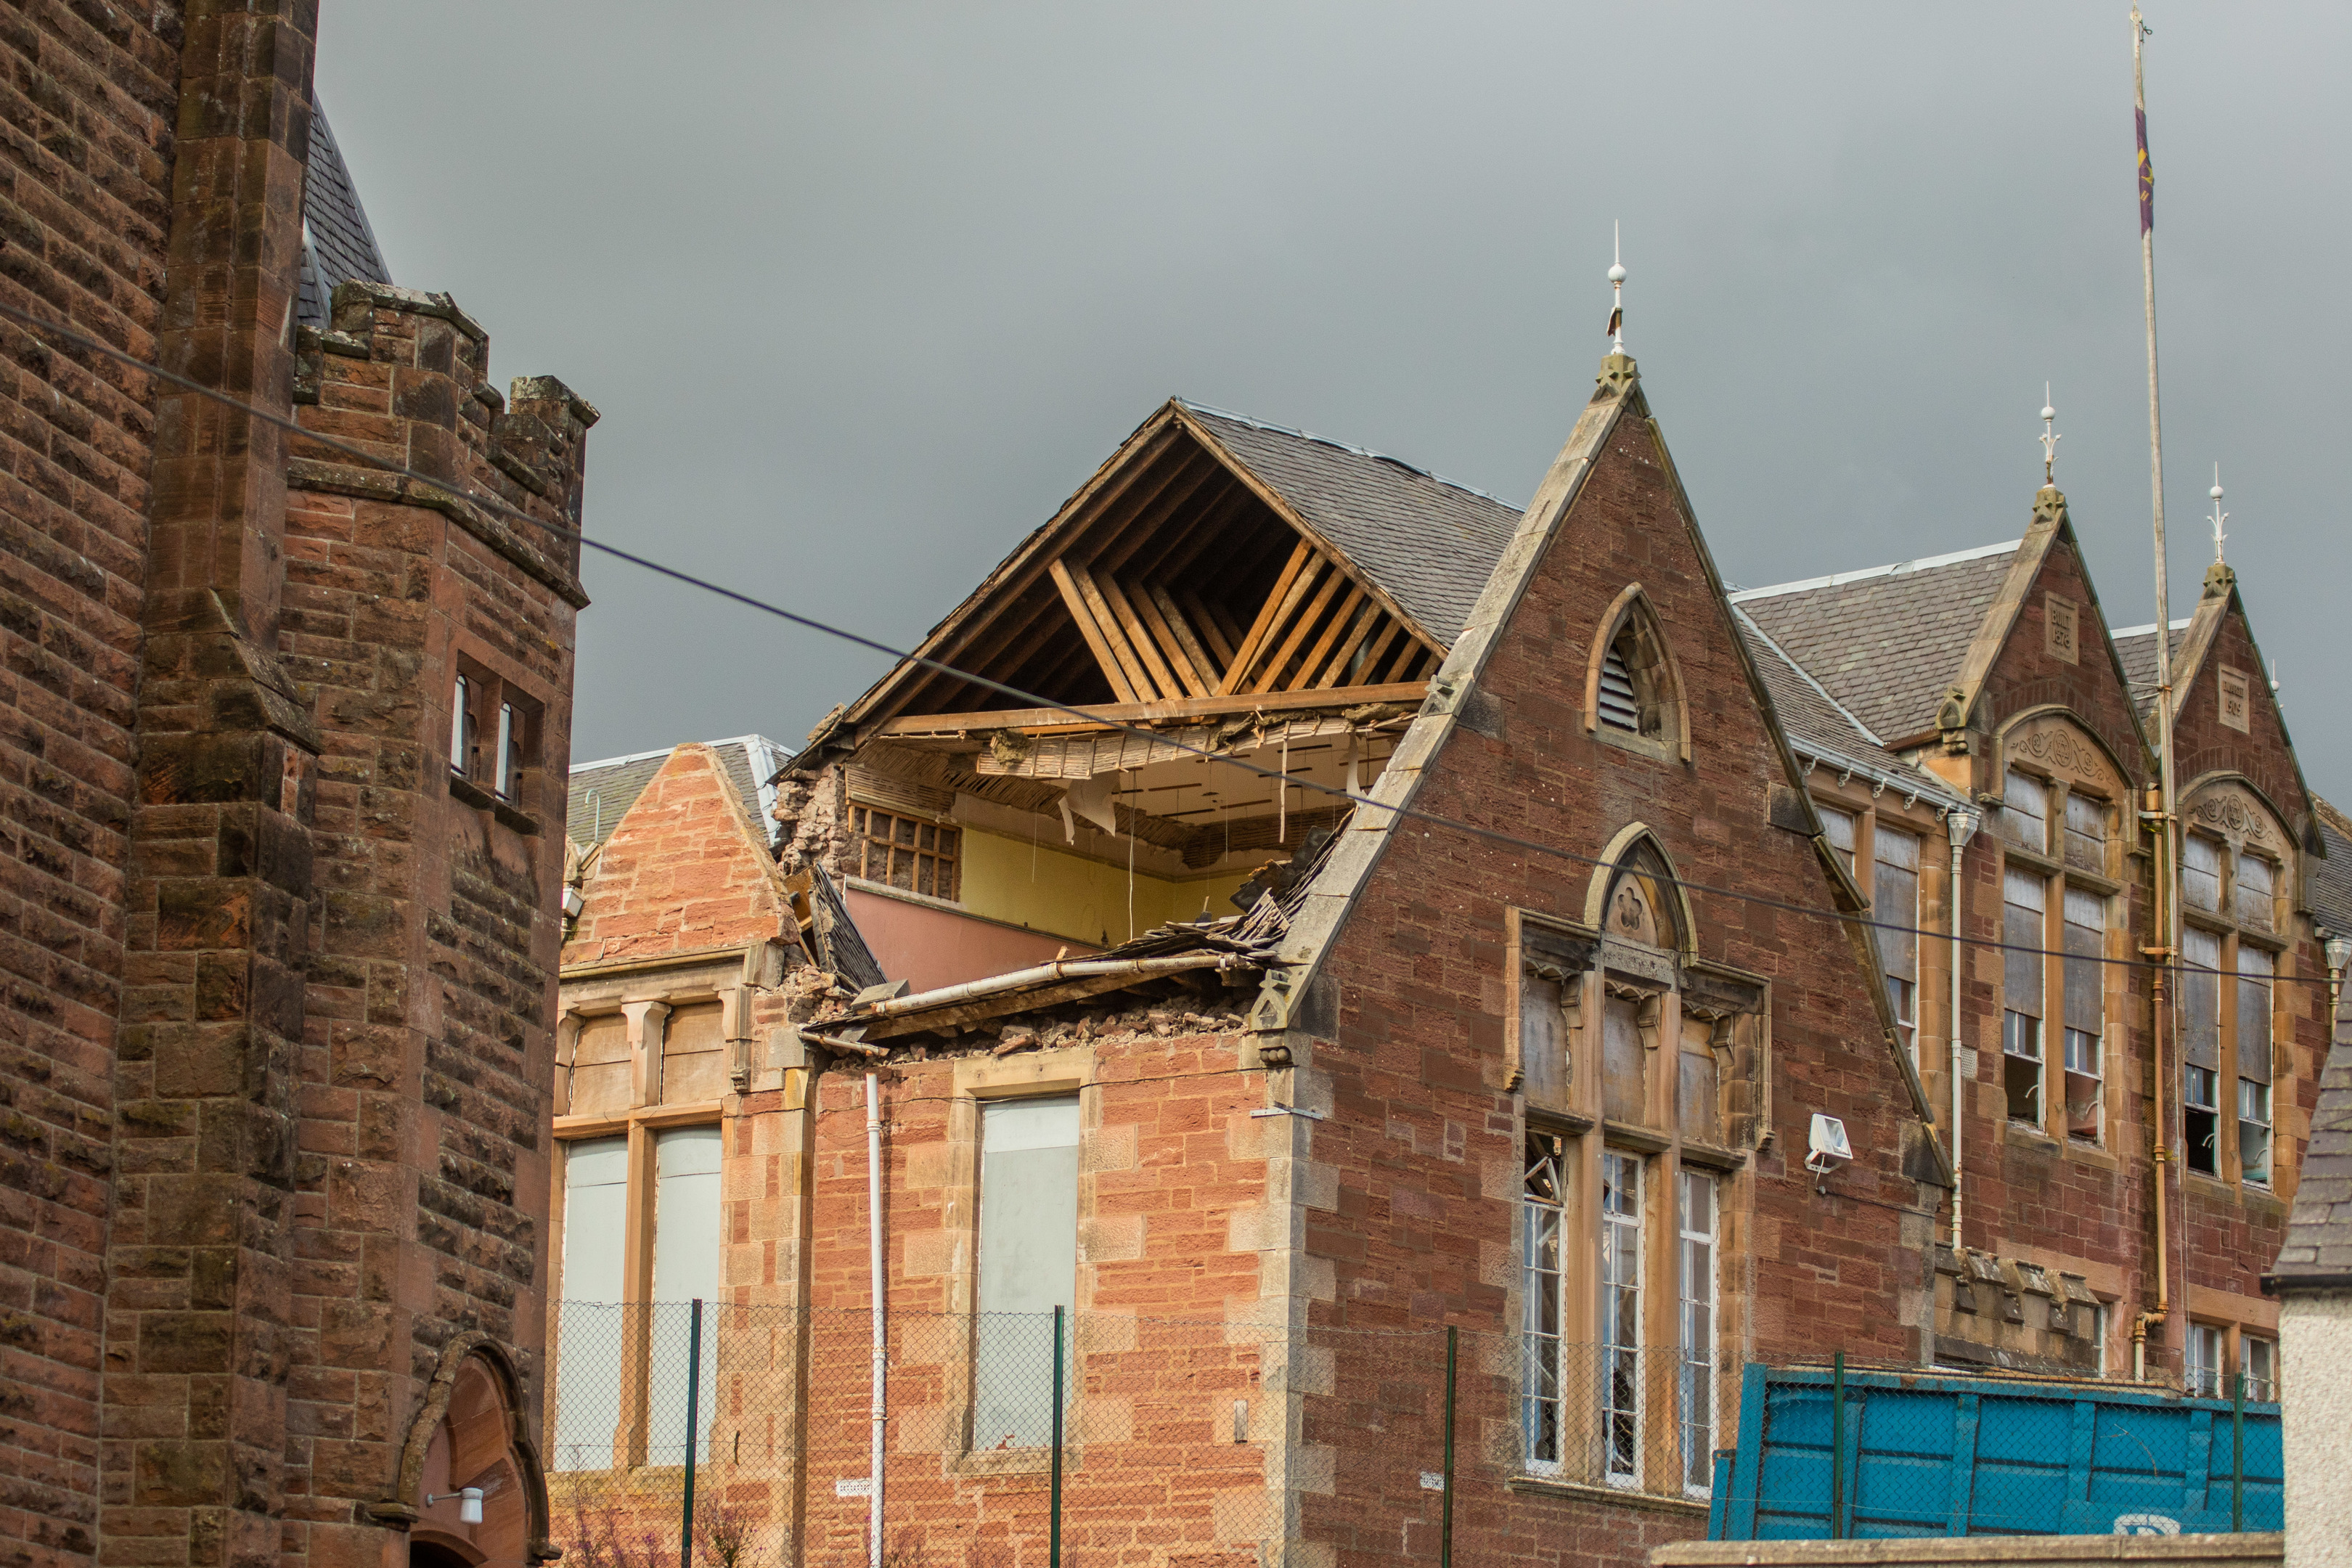 The roof collapsed during high winds.